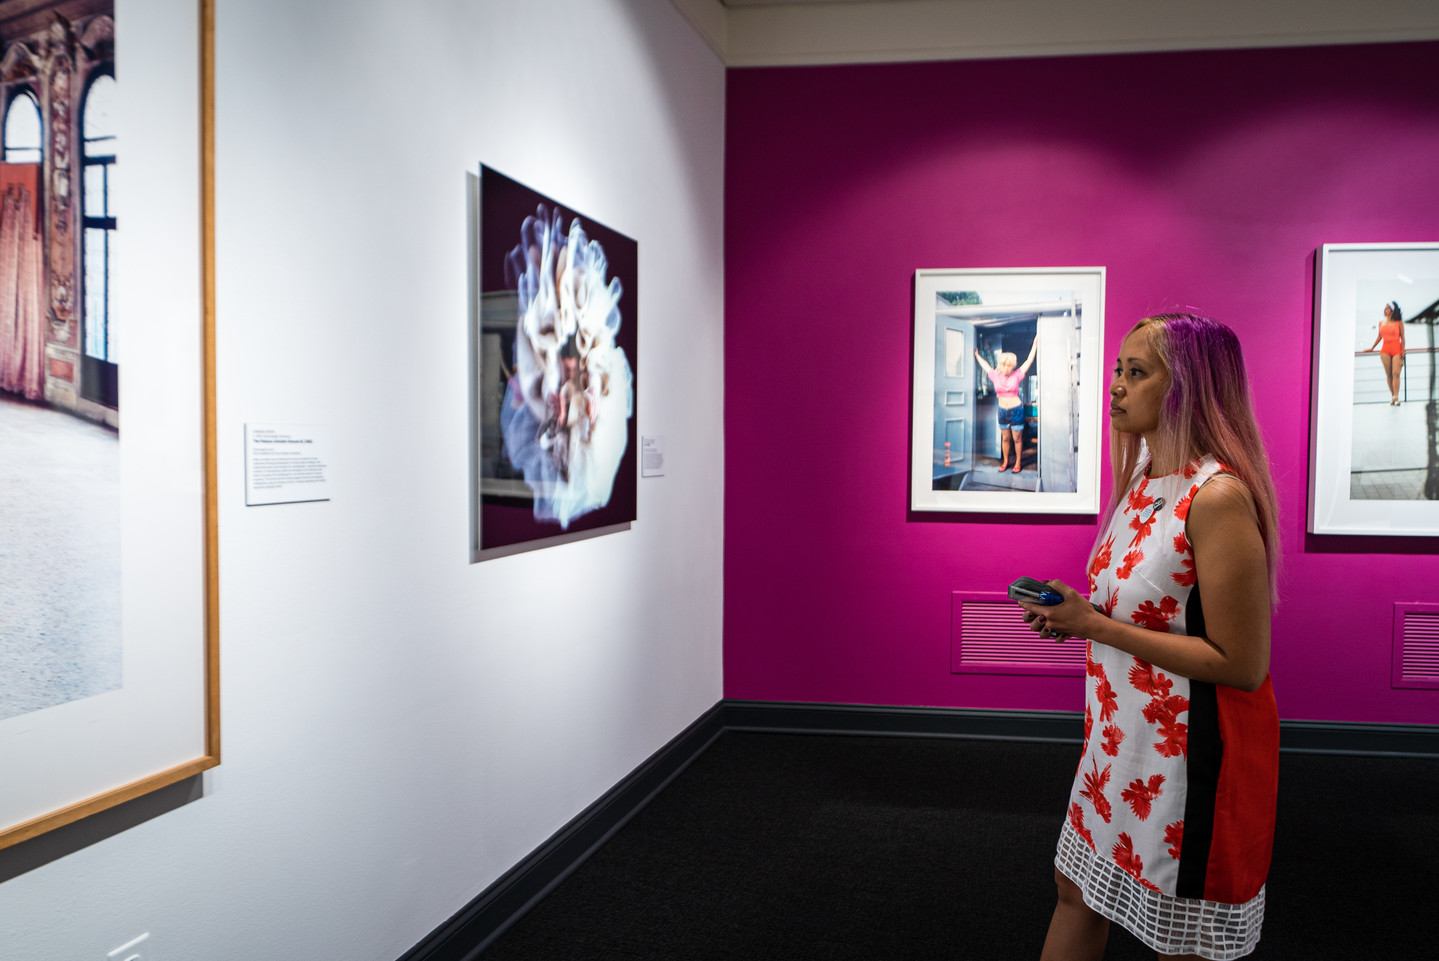 A women stands facing a white wall with two artworks. On the adjacent wall are two more artworks against a bright pink backdrop.